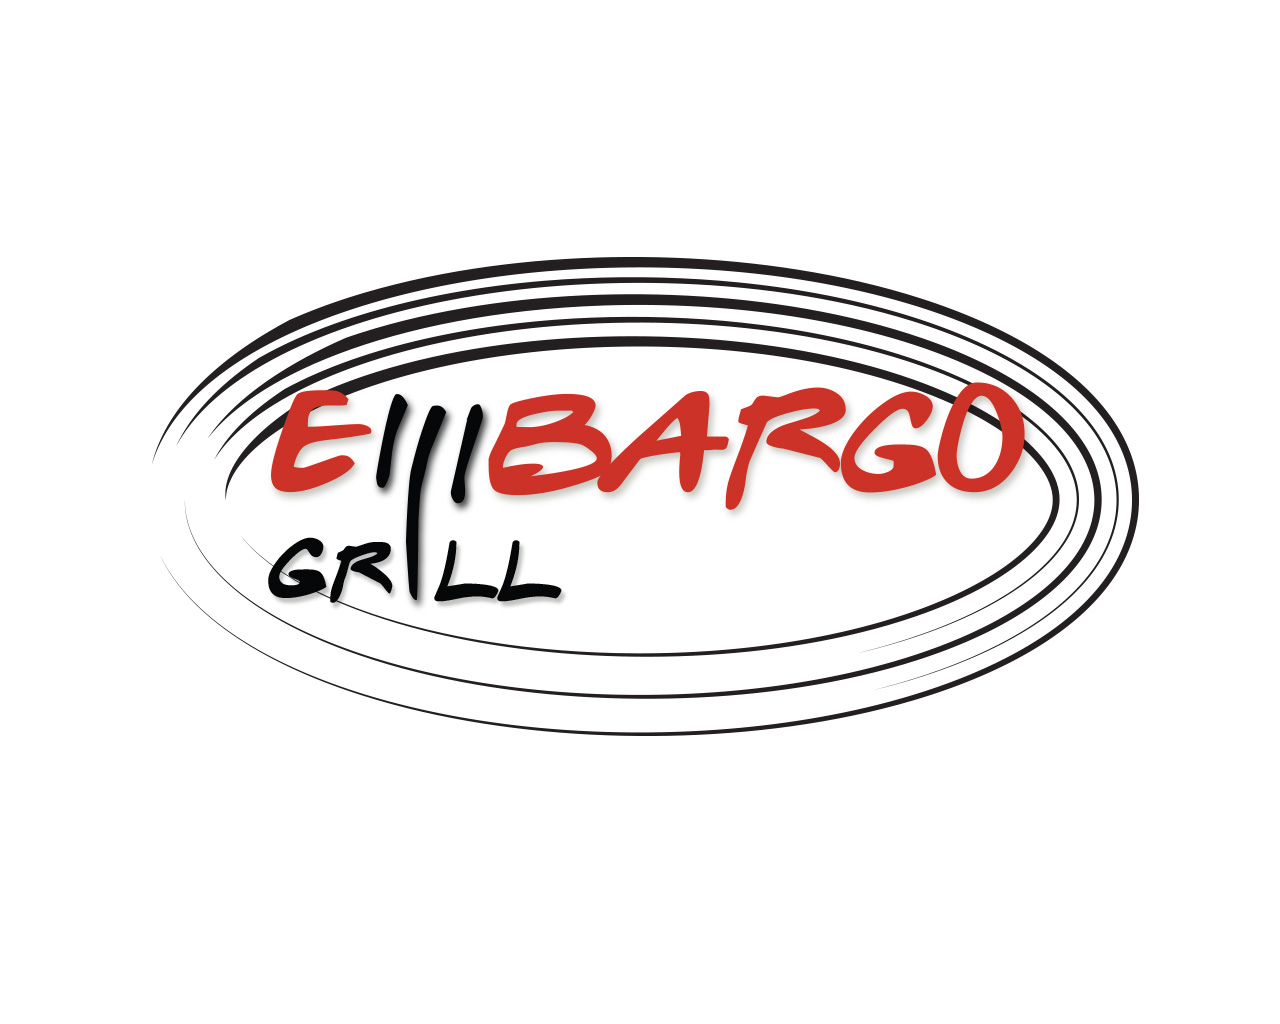 Logo Design by Ioanna Rokka - Entry No. 50 in the Logo Design Contest Captivating Logo Design for Embargo Grill.